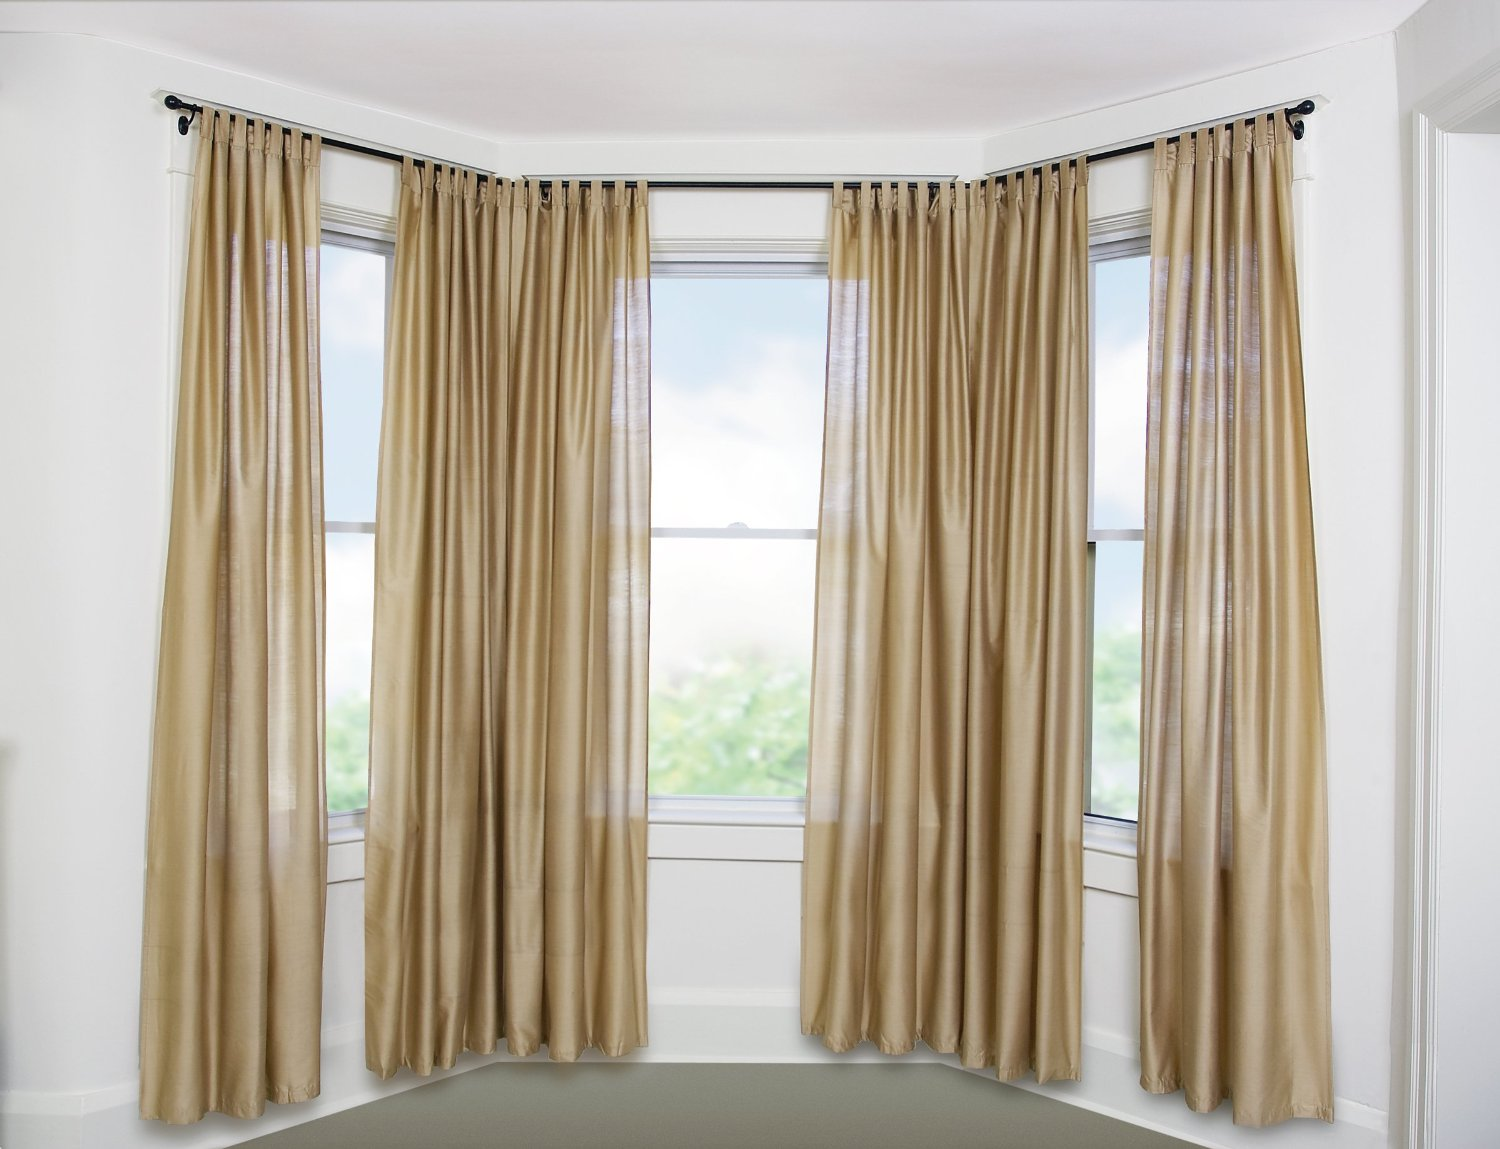 Curtain Rods For Bay Windows on 2015 pool design ideas